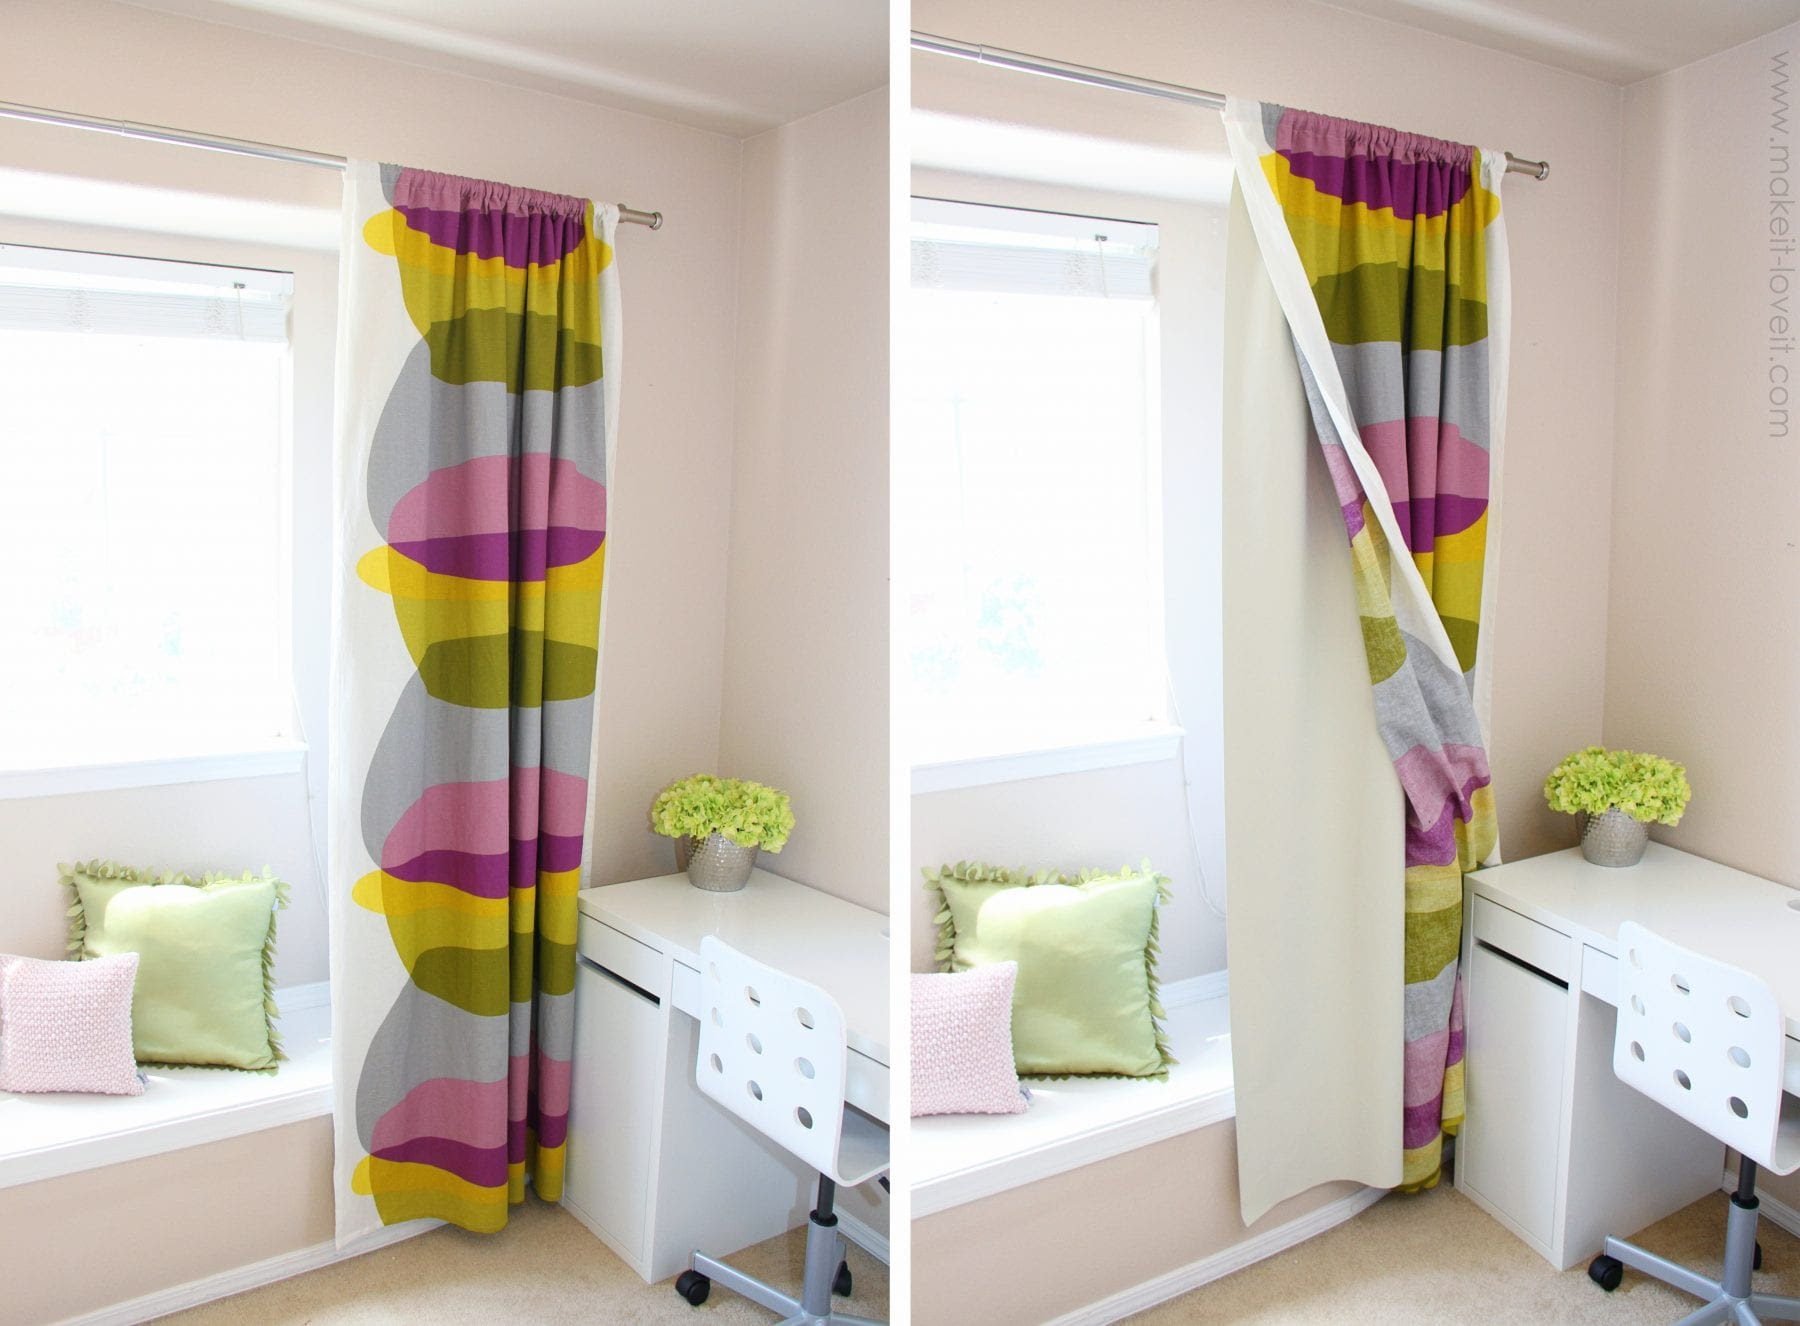 http://www.makeit-loveit.com/wp-content/uploads/2012/06/blackout-curtains.jpg